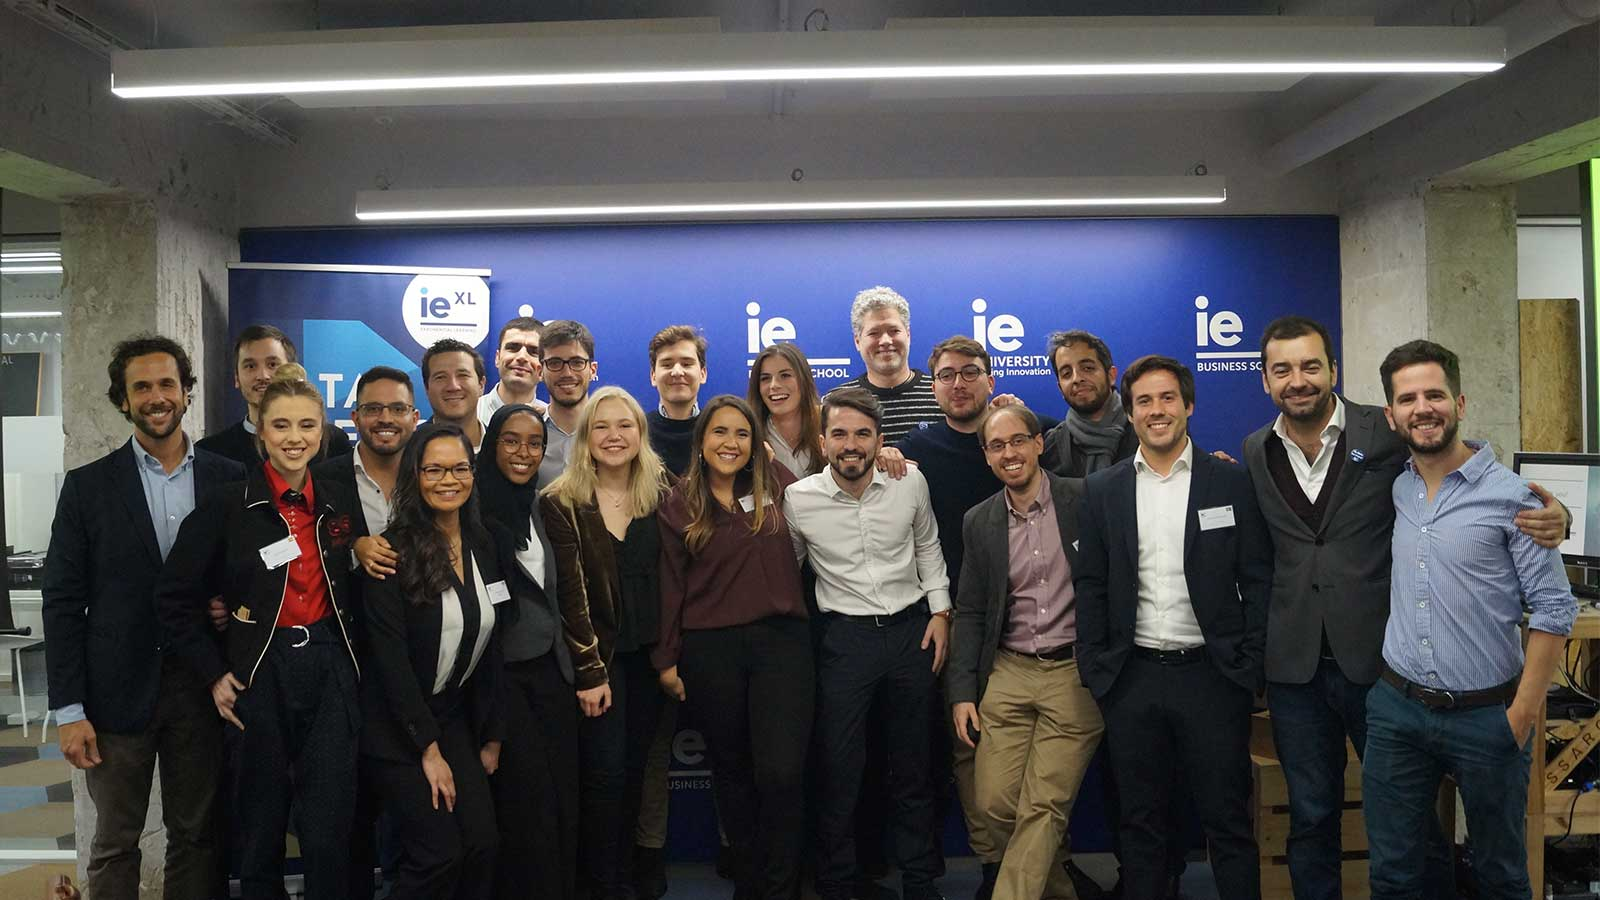 Data Science Bootcamp IE Exponential Learning IE Business School